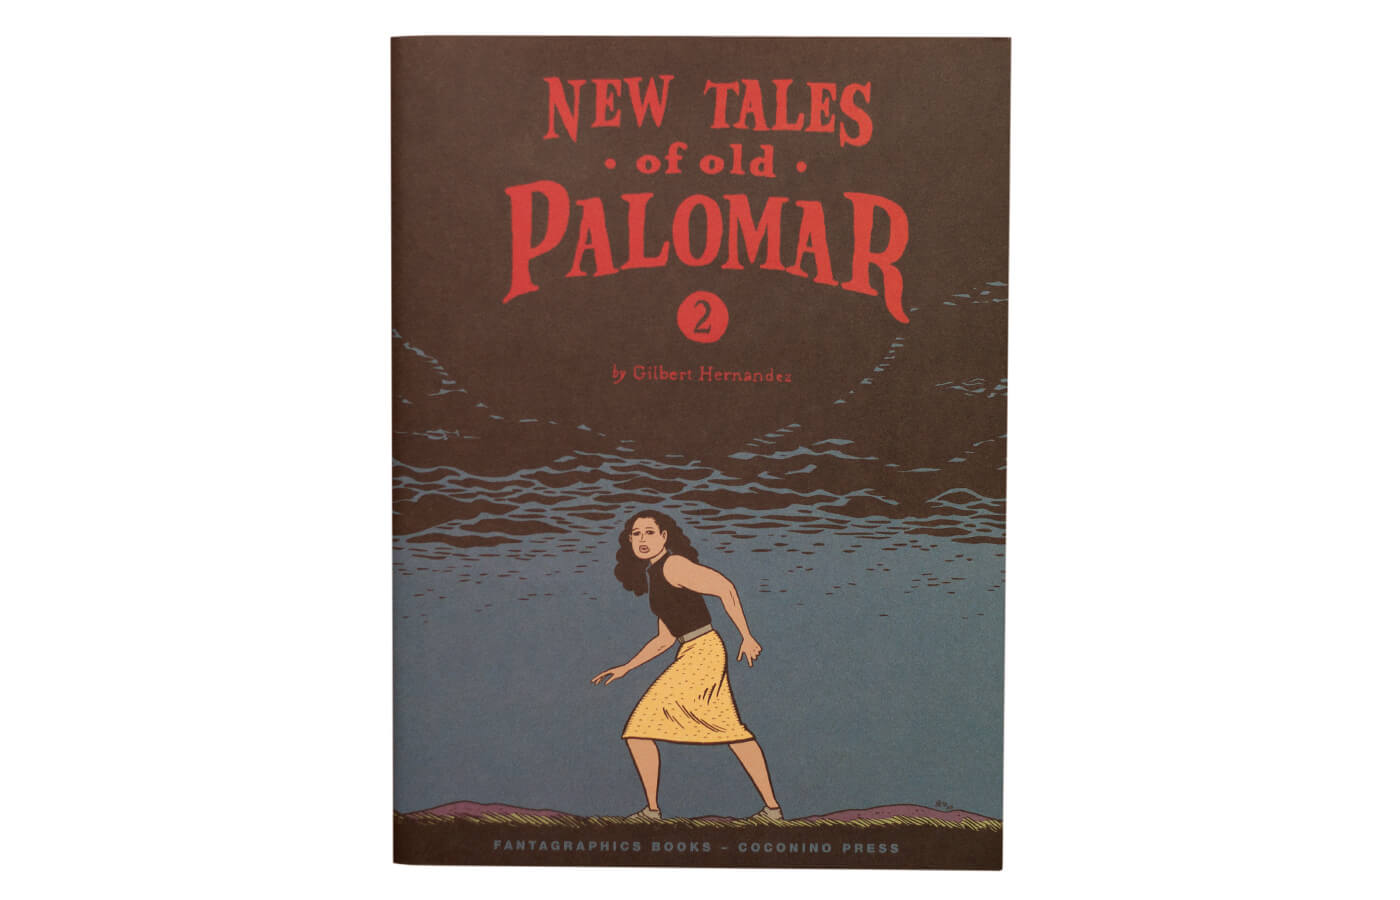 New Tales of old Palomar #2